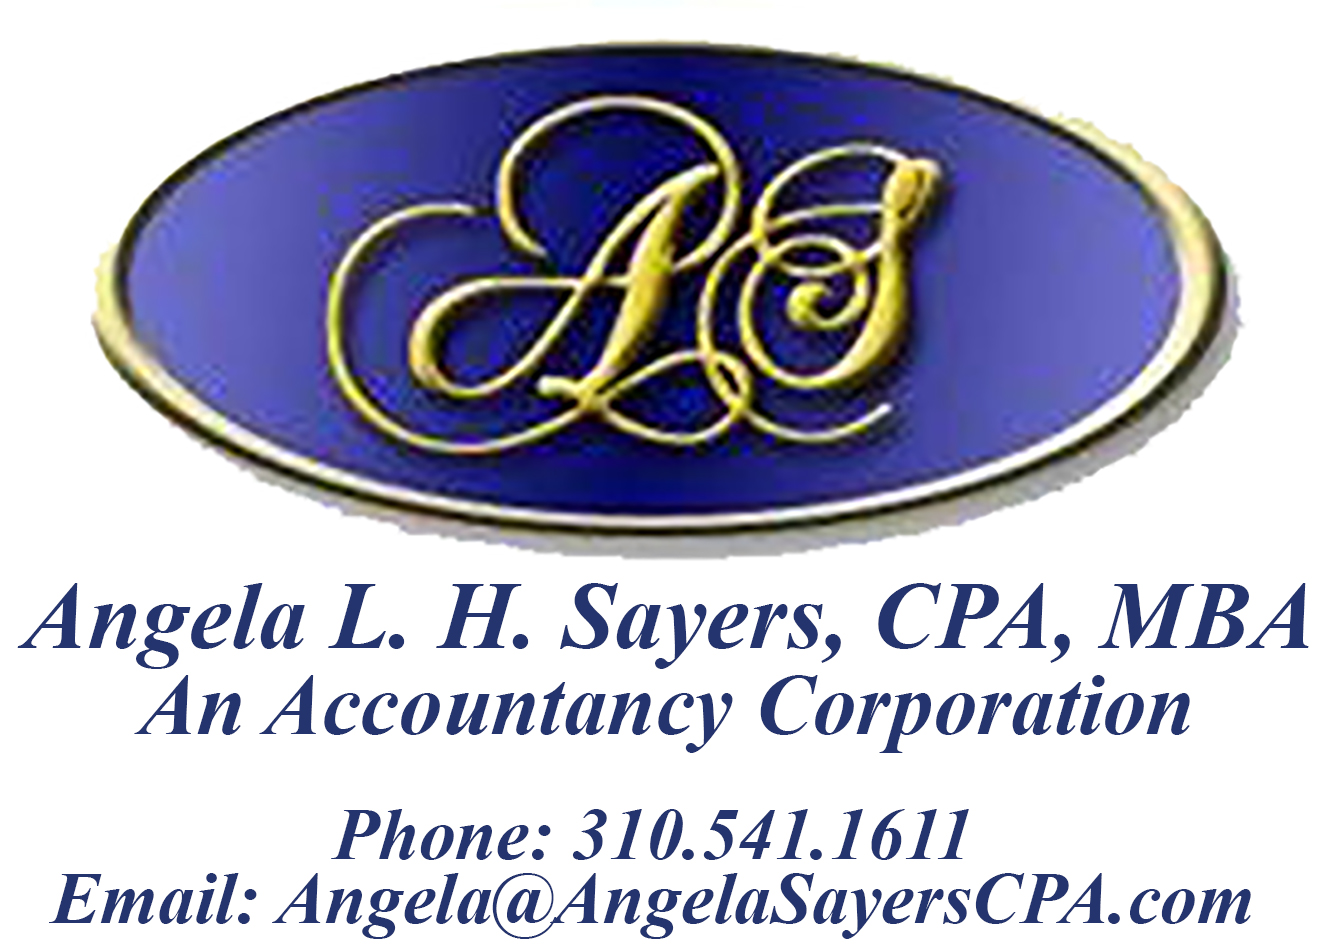 Angela L. H. Sayers, CPA logo and contact information